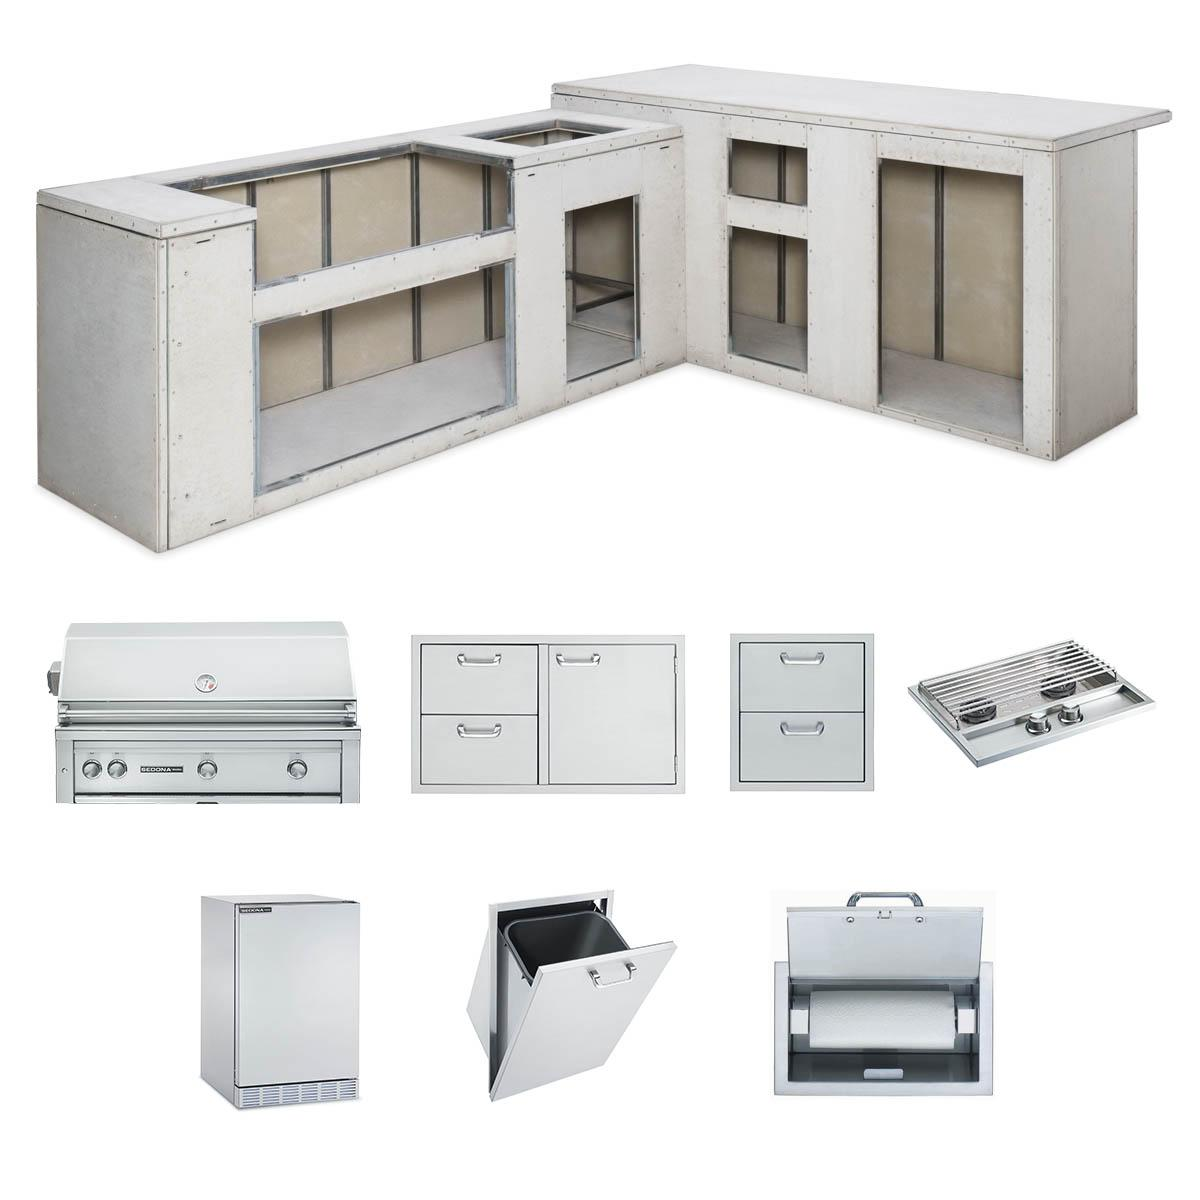 "LynxRtf Island Package Includes: L700 Grill, 42"" Access Doors, Double Side Burner, Refrigerator, Paper Towel Dispenser, Trash Center, Double Drawers"